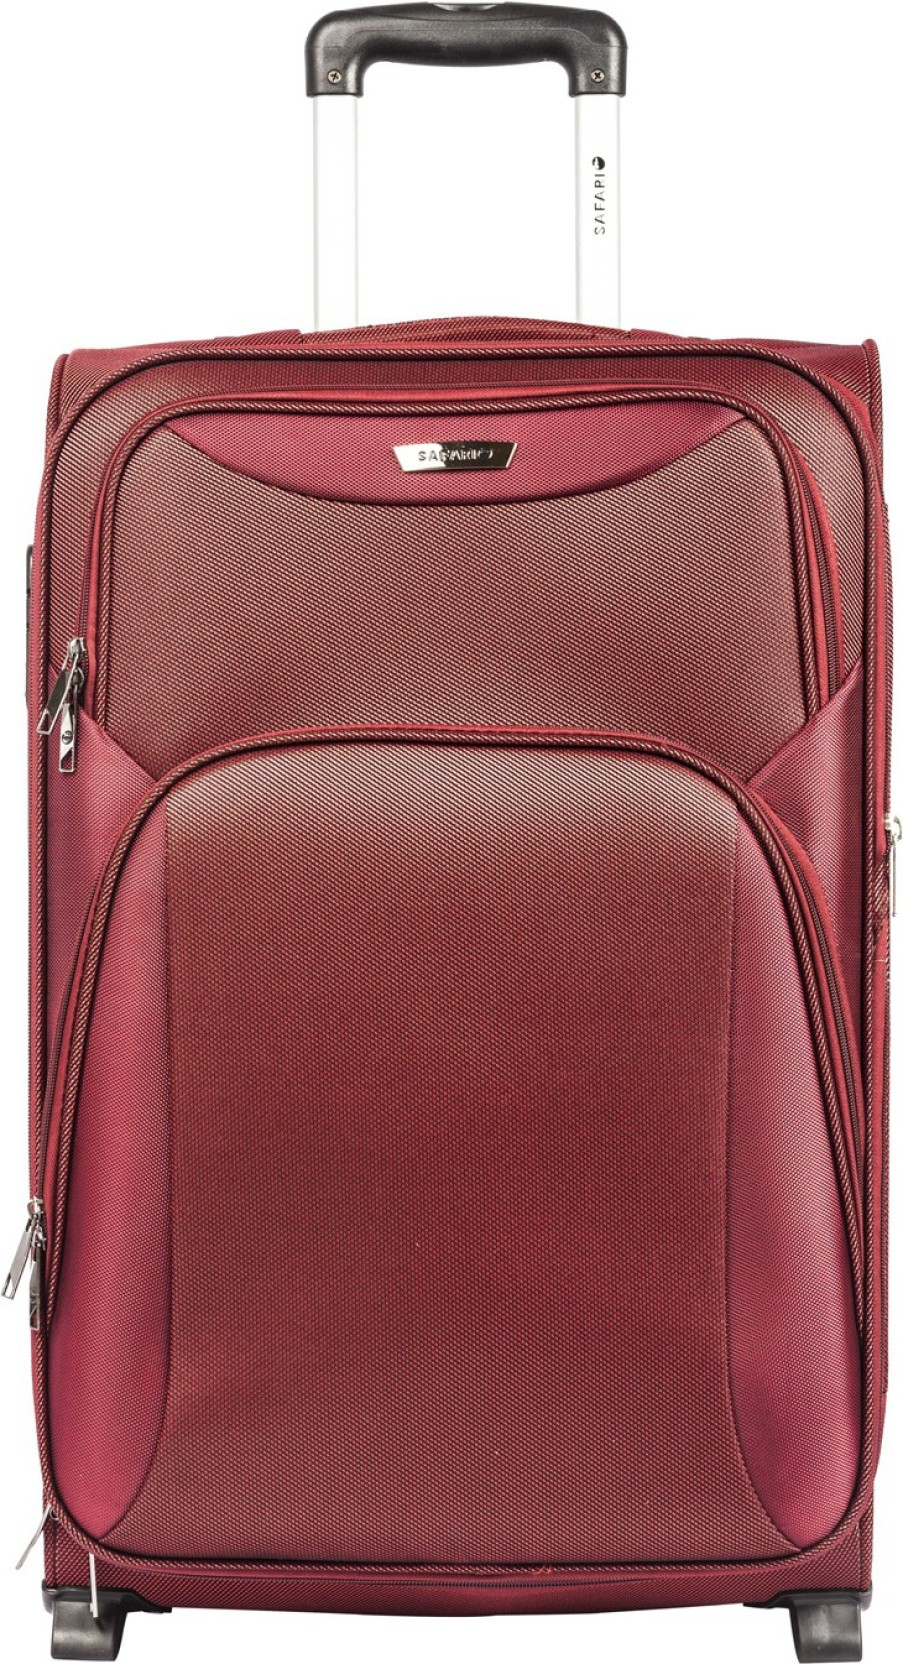 5157061395d Safari Water resistance 2 Wheel Trolley Bag Expandable Cabin Luggage - 22  inch. Share